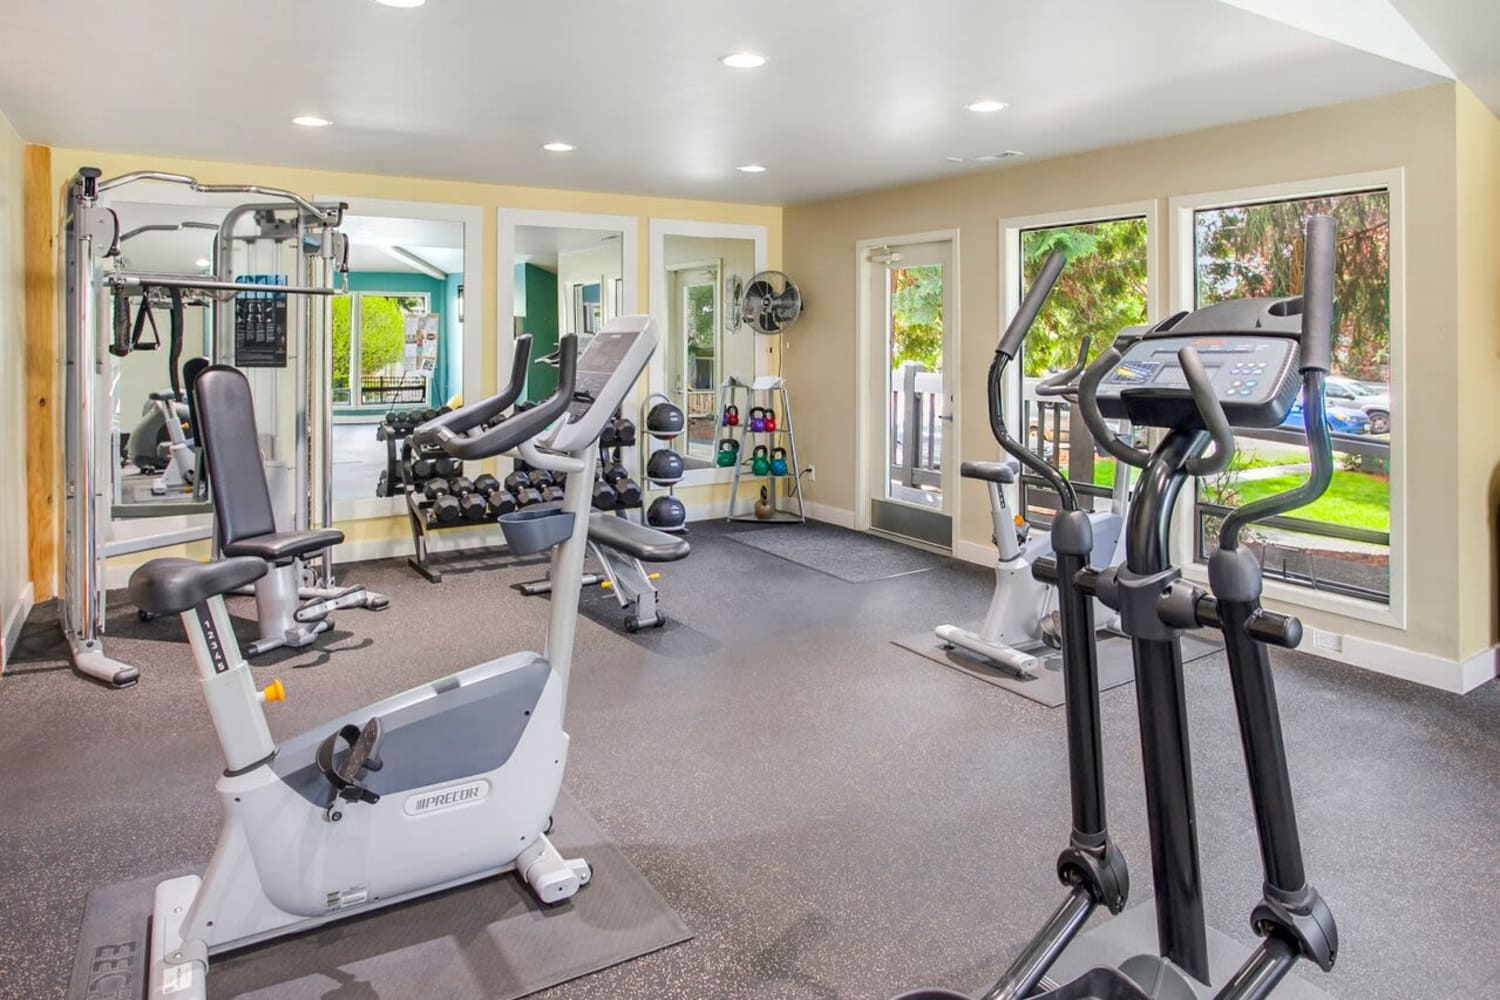 Fitness equipment at The VUE in Kirkland, Washington